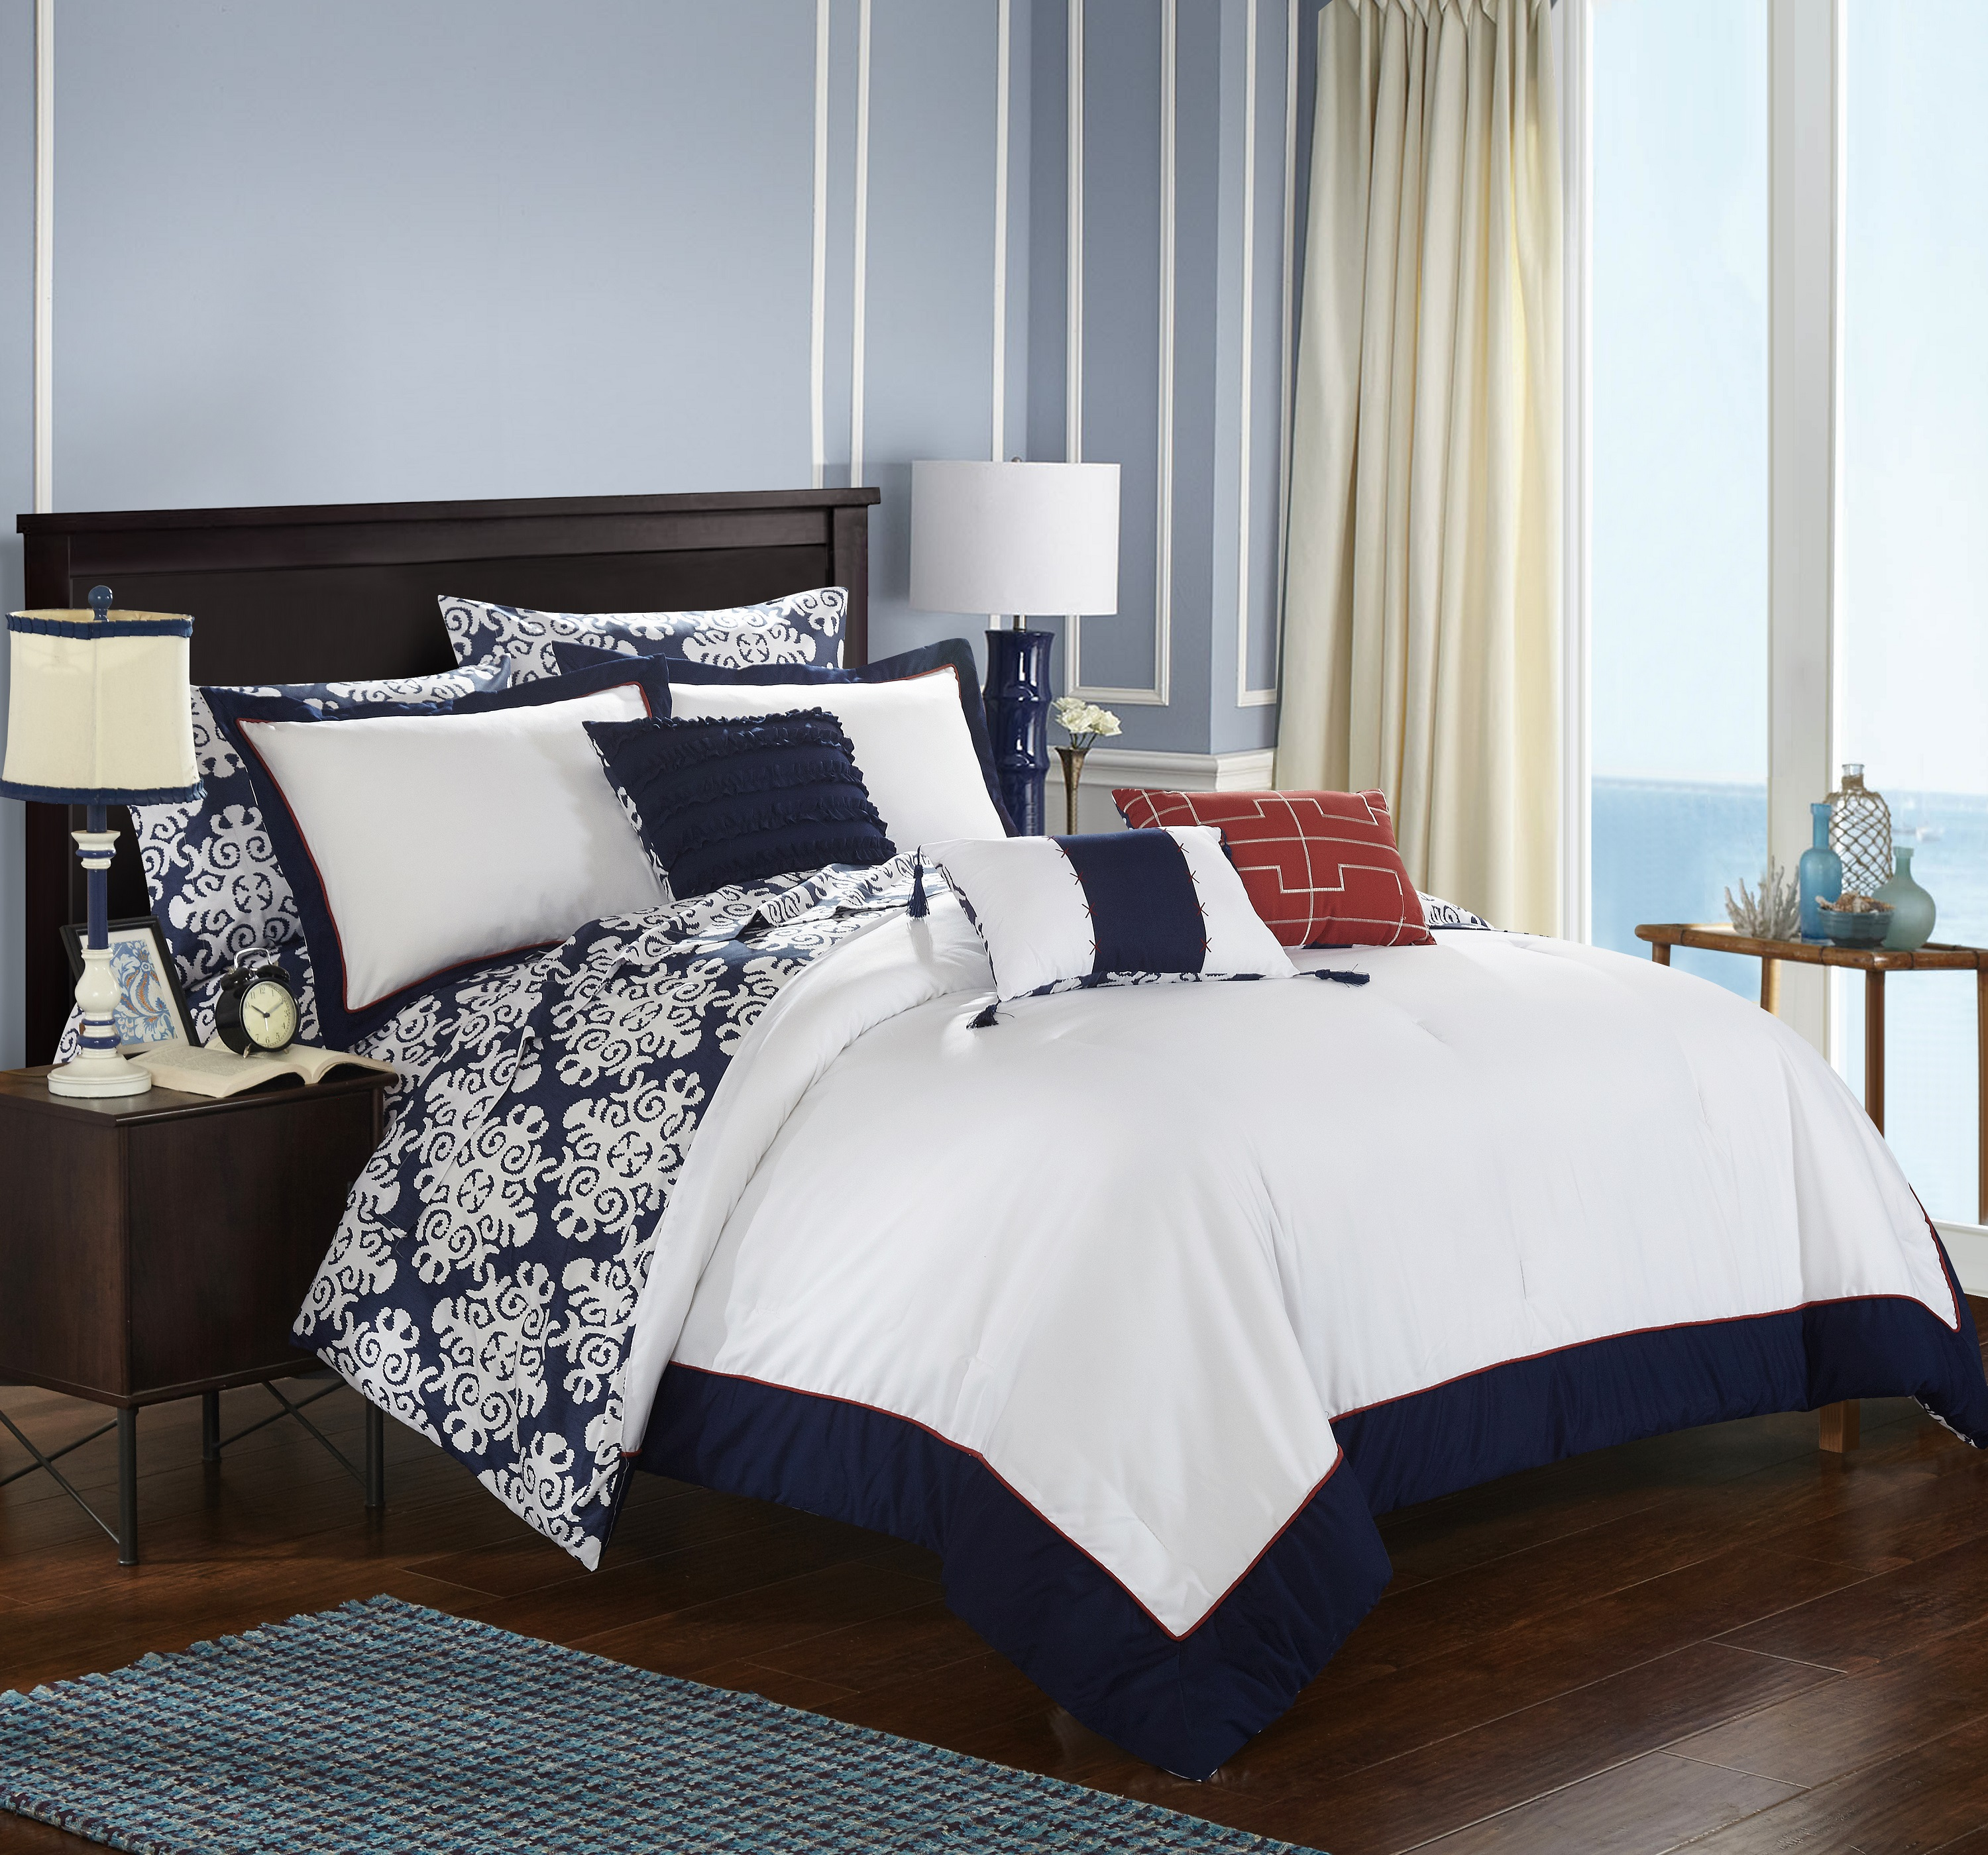 chic home 8 piece lalita navy blue and white reversible medallion printed plush hotel collection twin bed in a bag comforter set navy with sheet set